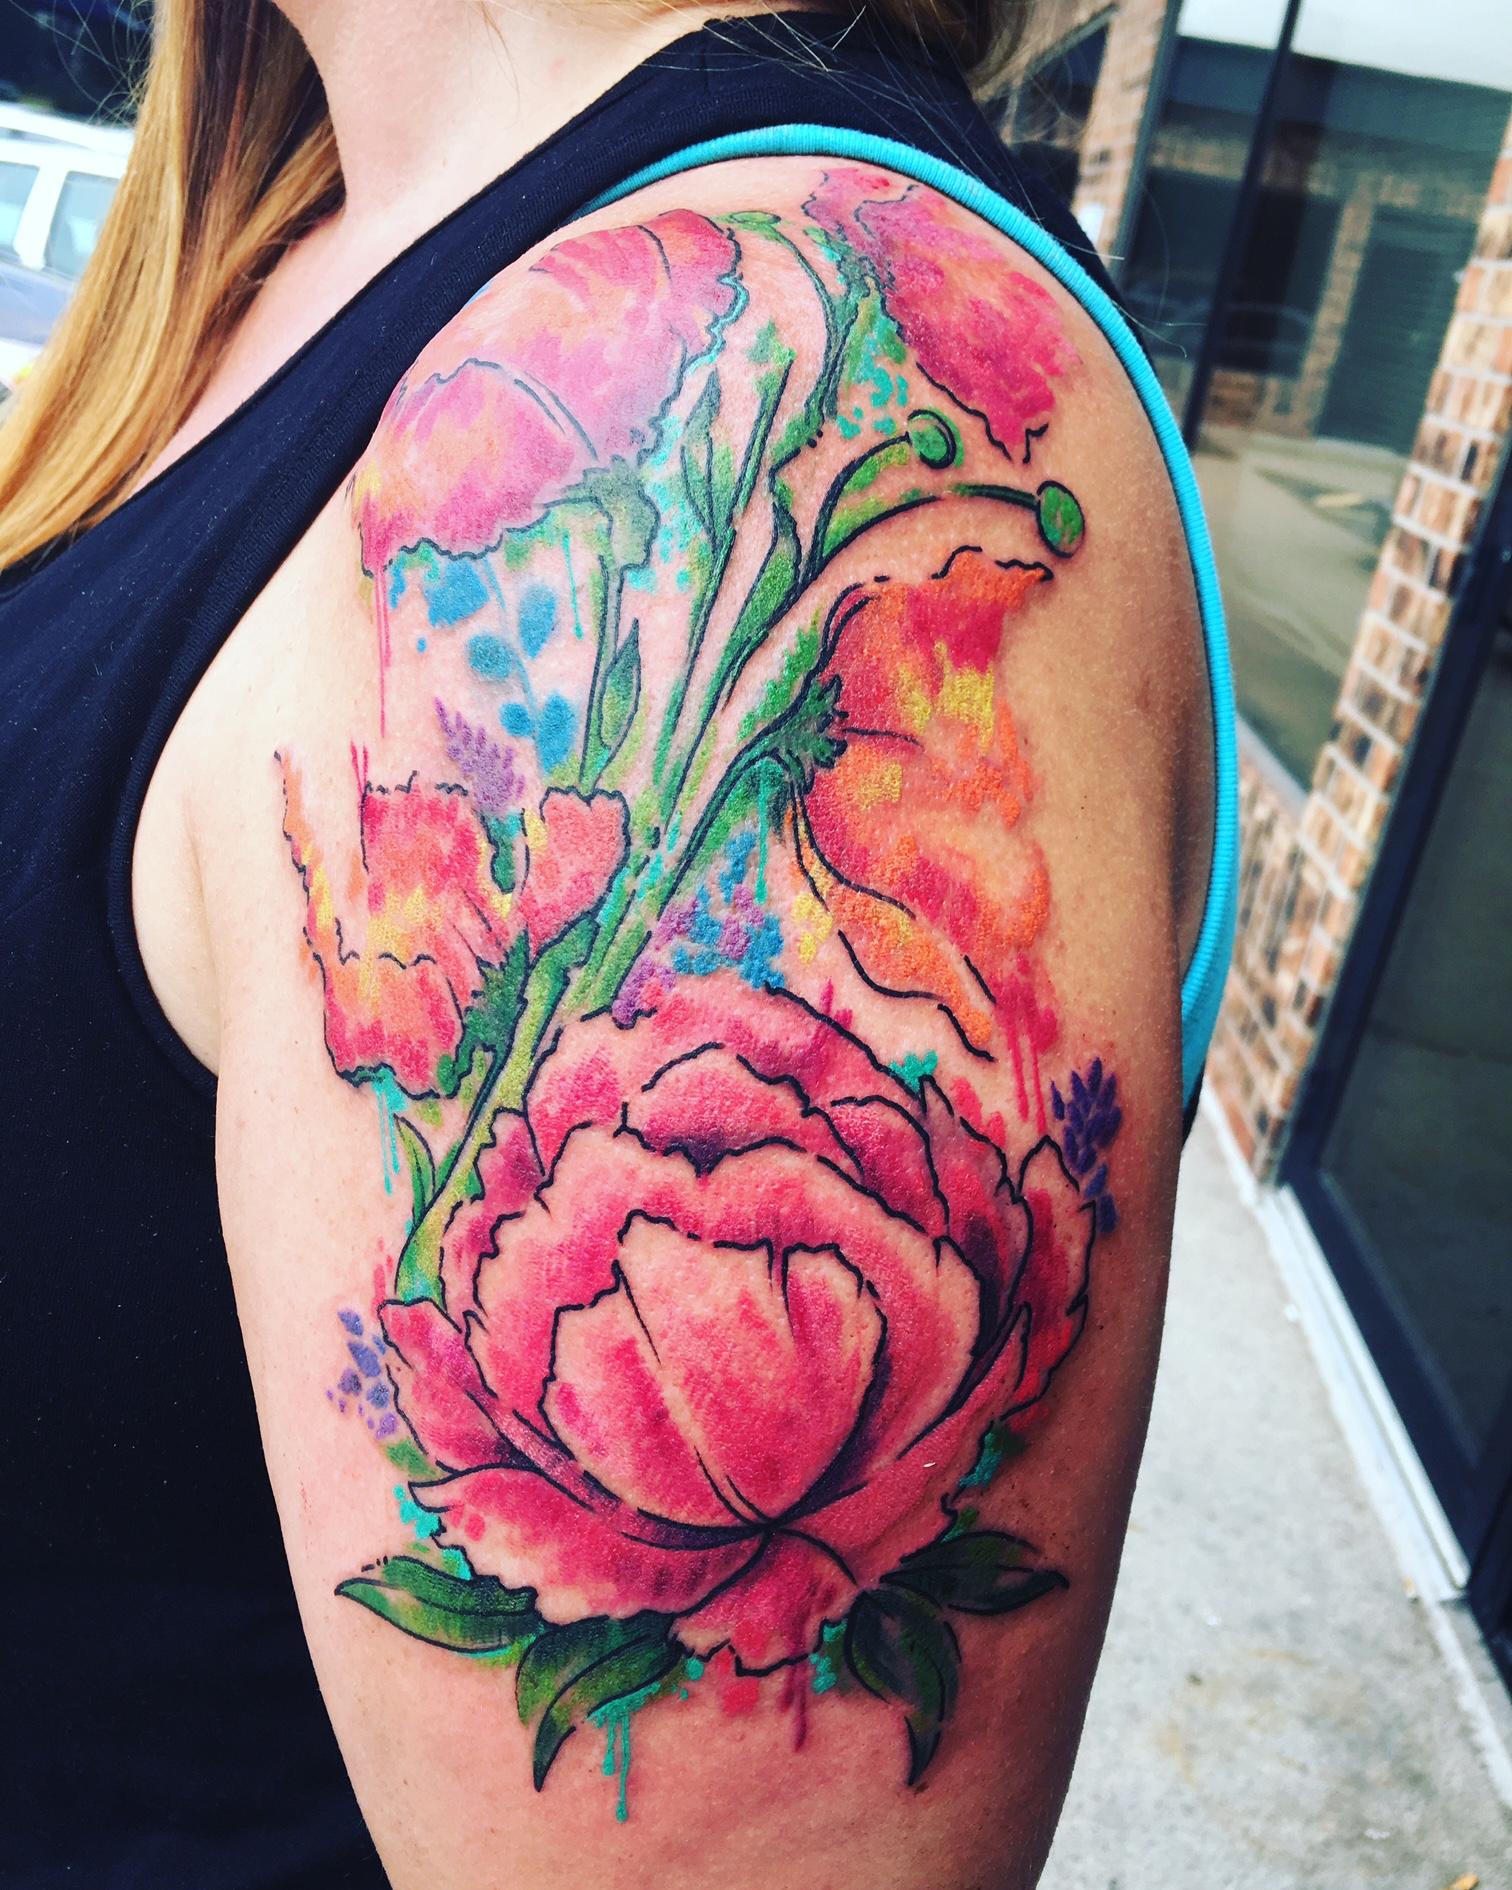 Using Essential Oils For Tattoo Aftercare Crazy For Coconuts Ideas And Designs